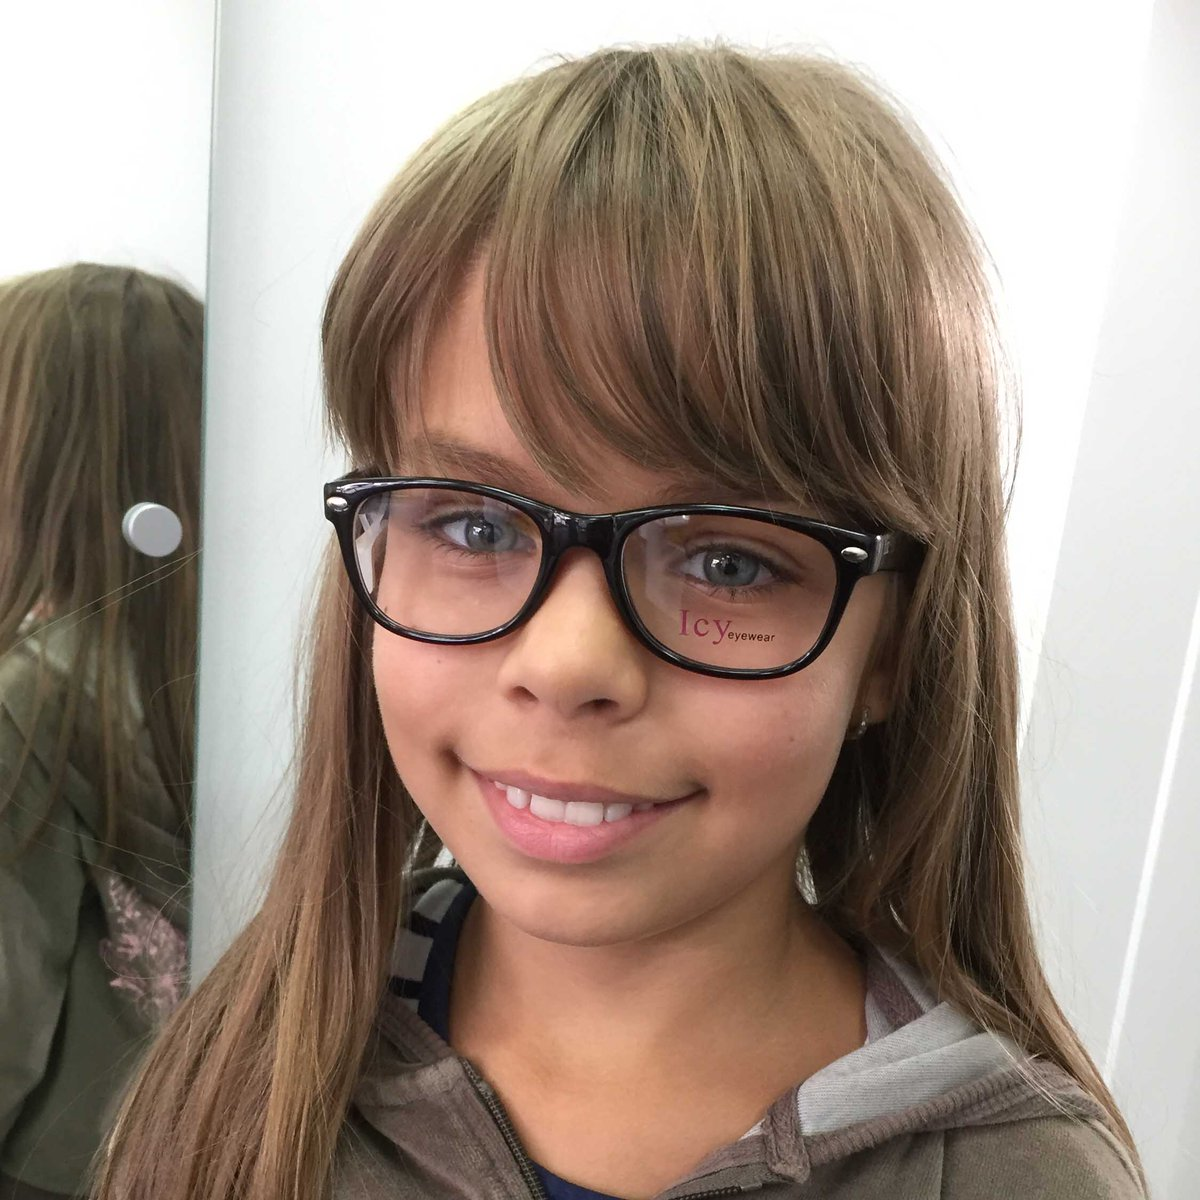 Treat your kid's eyes this half term. Did you know that 1 in 5 school aged children have an undiagnosed vision problem? Book today on 020 8759 9395 #halfterm #halftermideas #parenting #kids #childrenseyewear #childrensglasses #hounslow #heathrow #kidsglasses #kidshealth